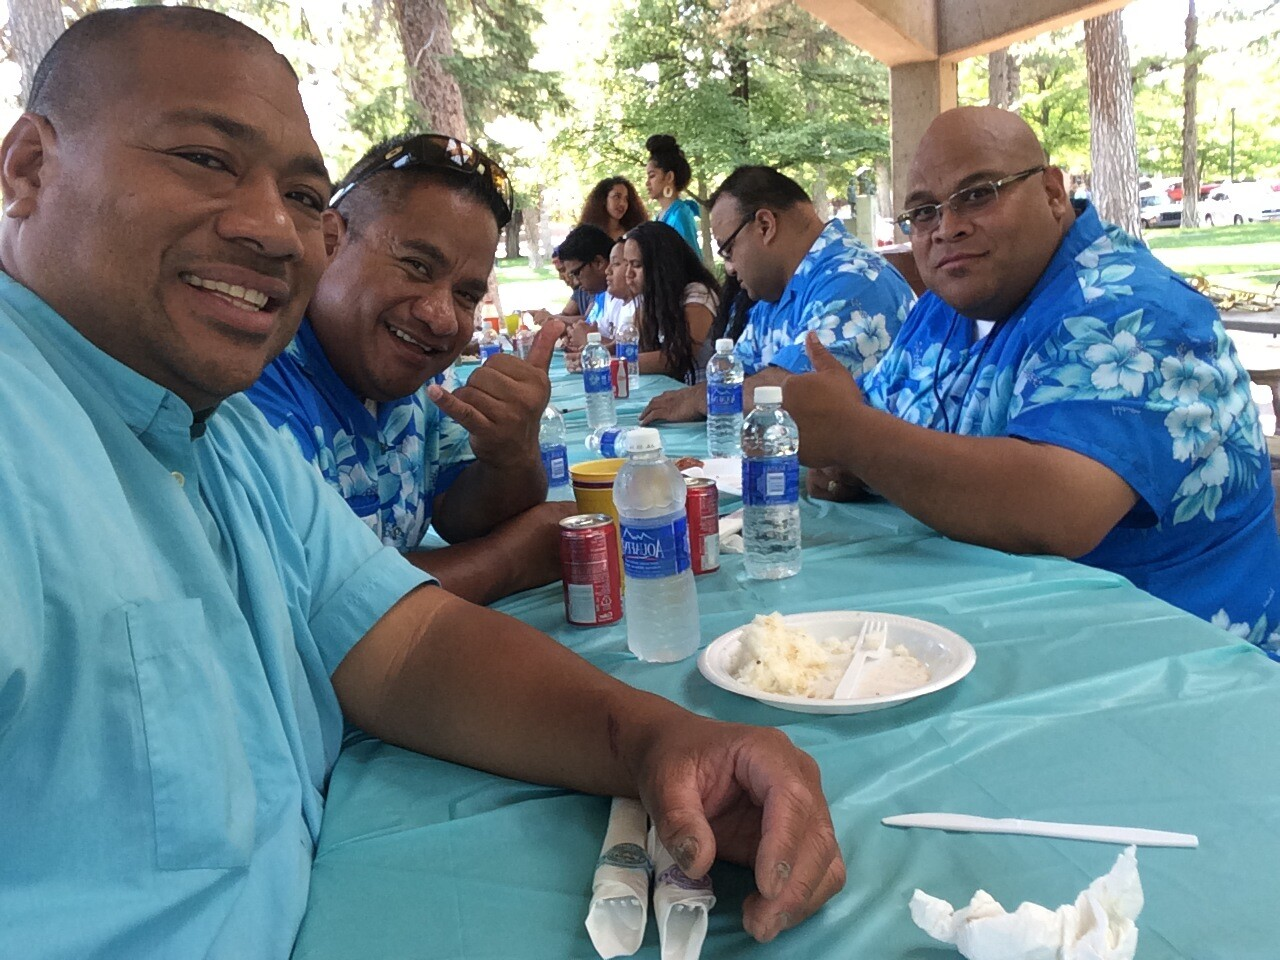 Photos: Big Budah's blog: Keeping busy on Pioneer Day